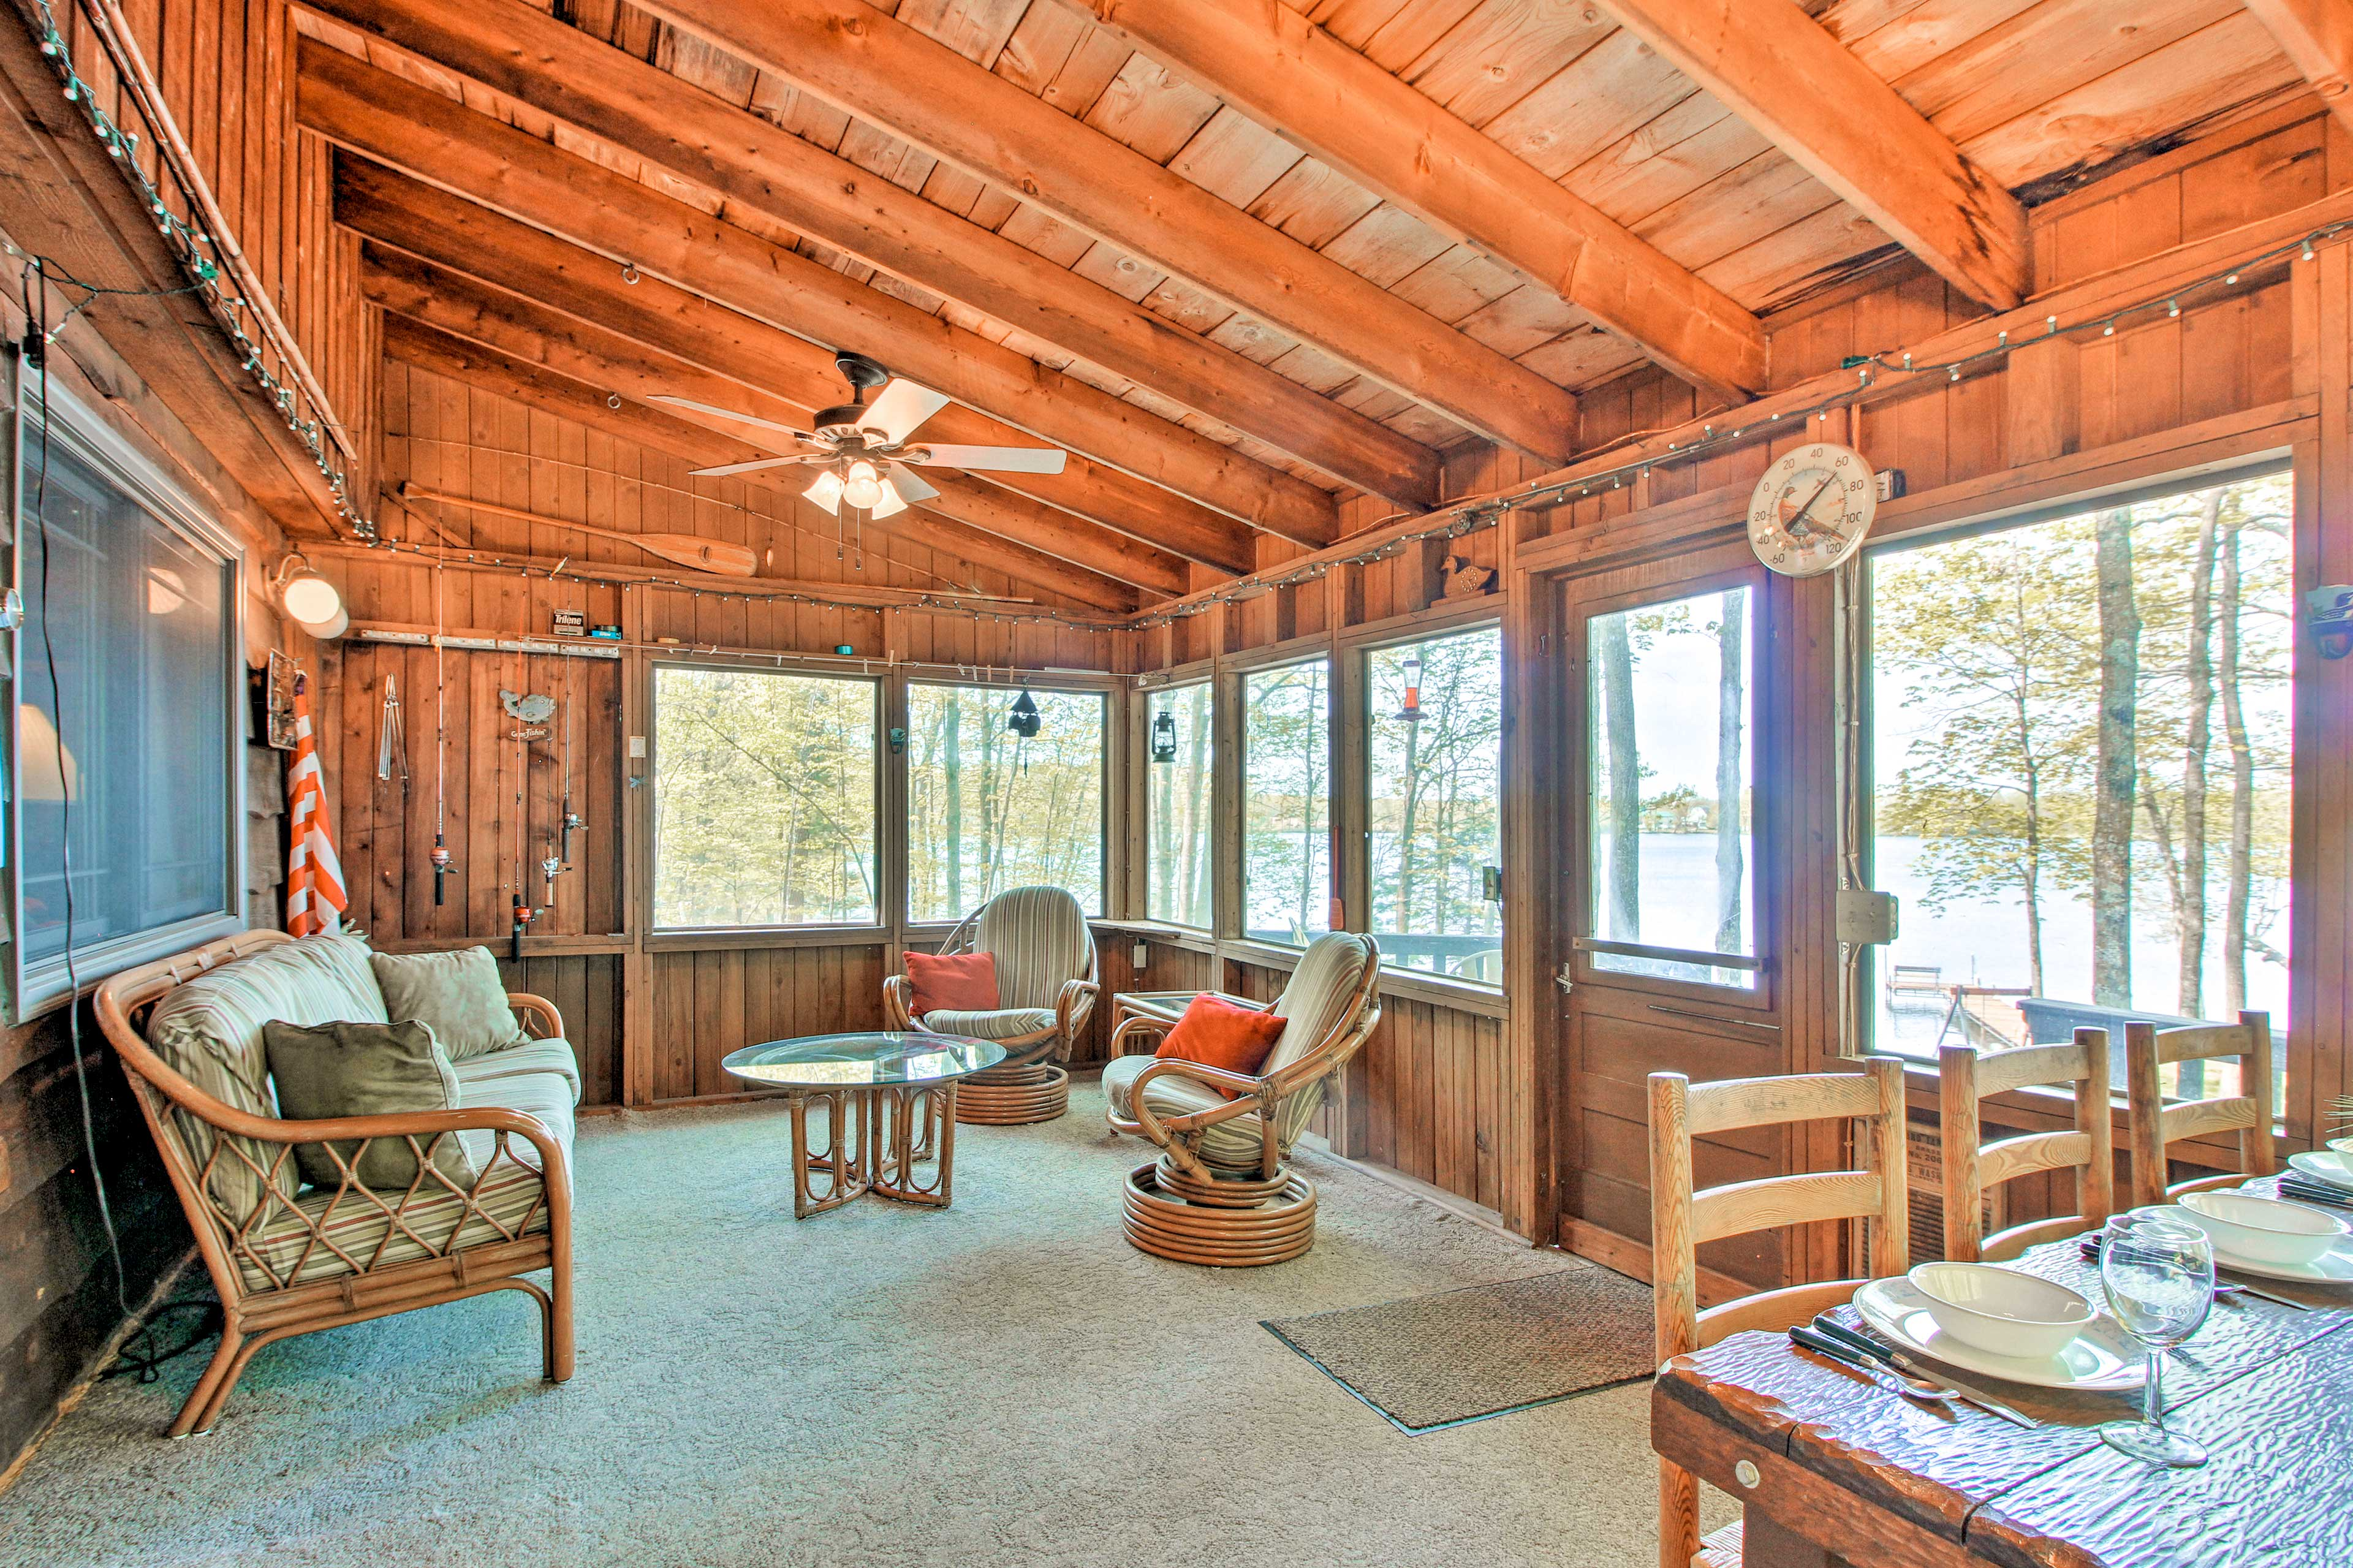 With wall-to-wall windows, the sunroom is a great place to gather.